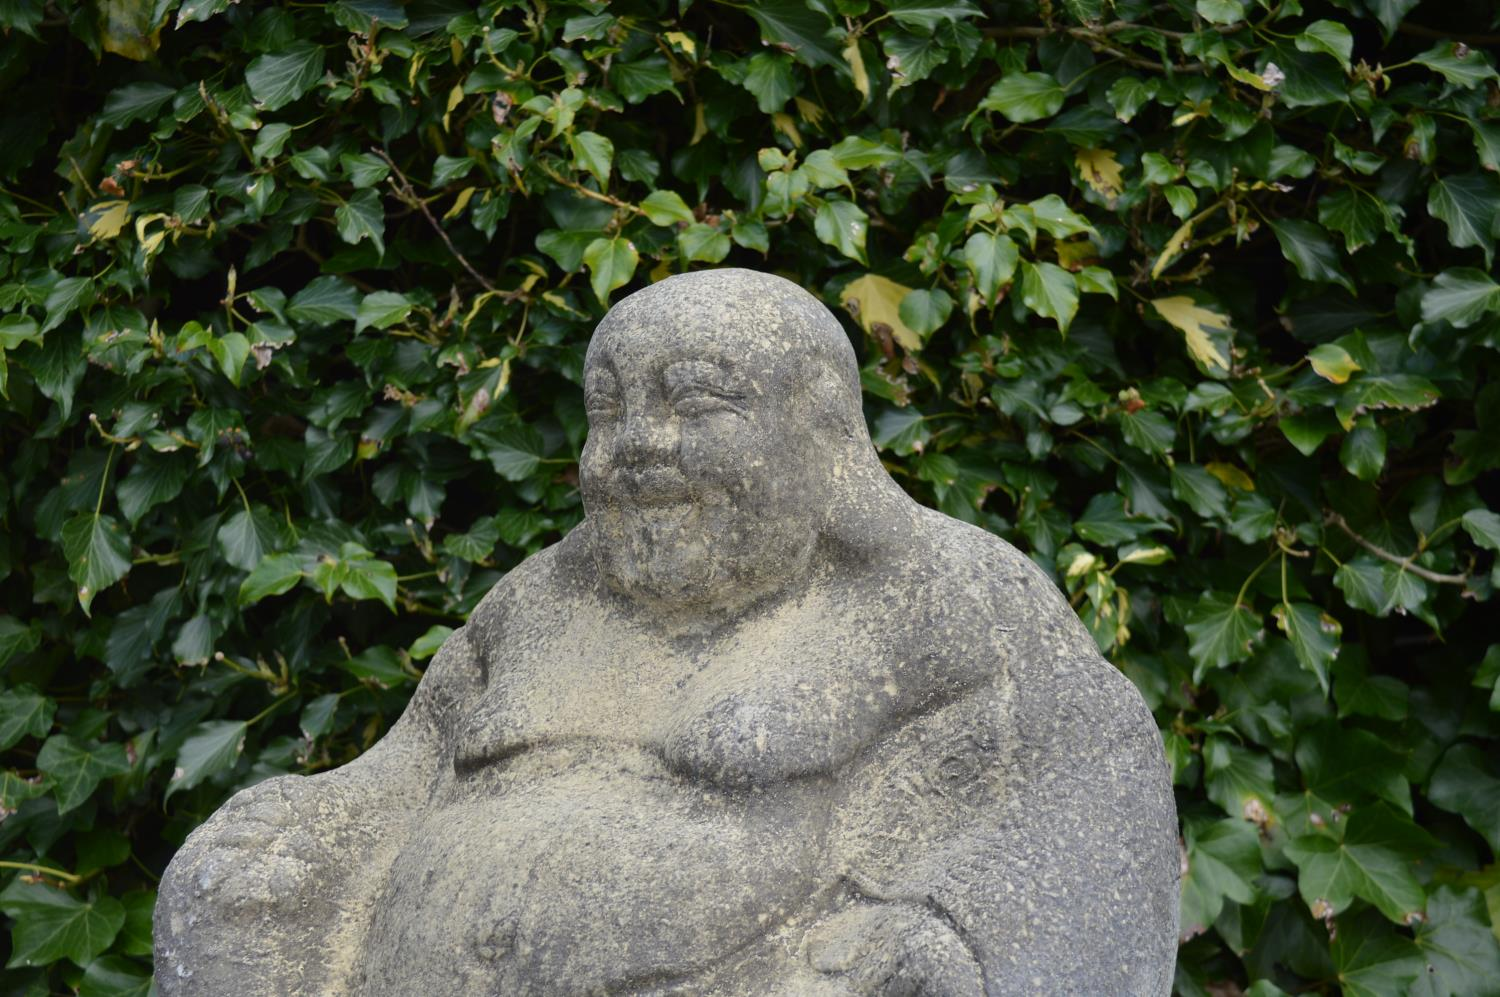 Sandstone model of a Buddha. - Image 2 of 2